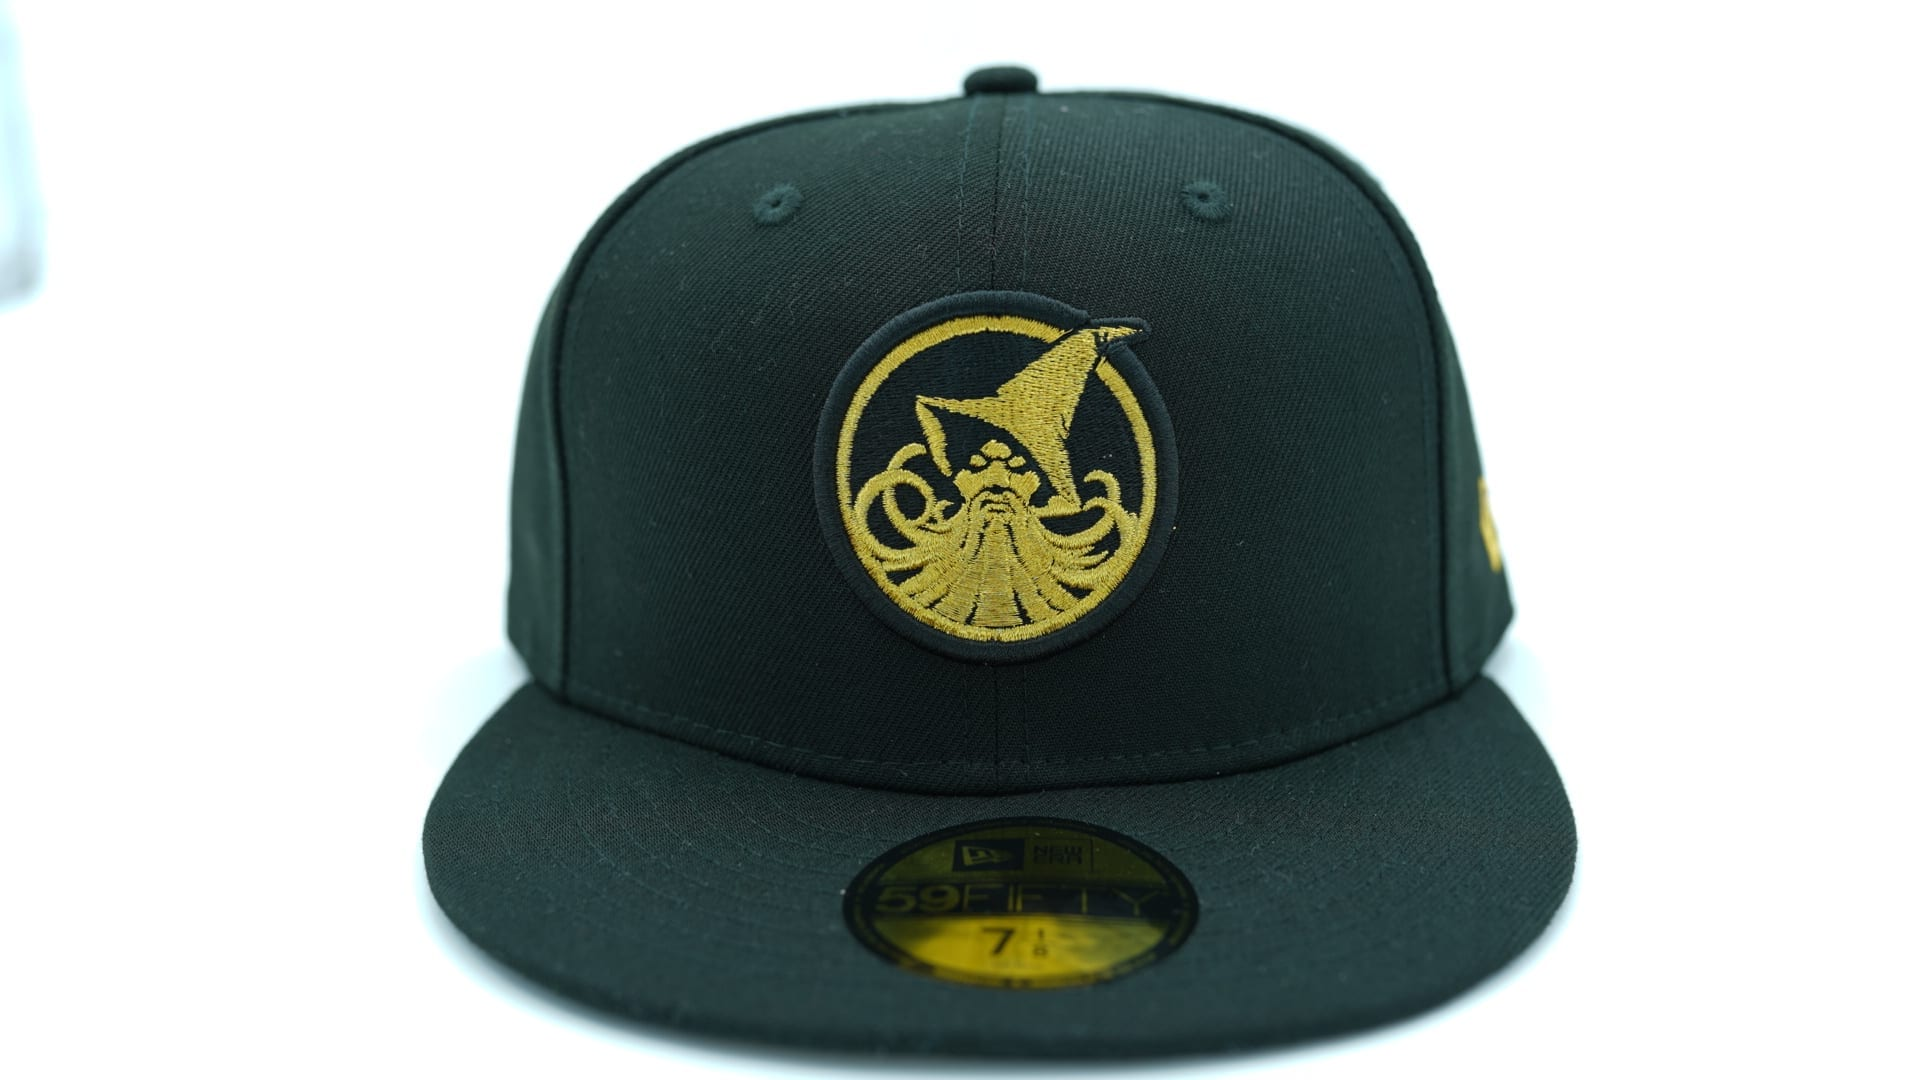 For more info fitted hats to see more 59fifty baseball fitted hats